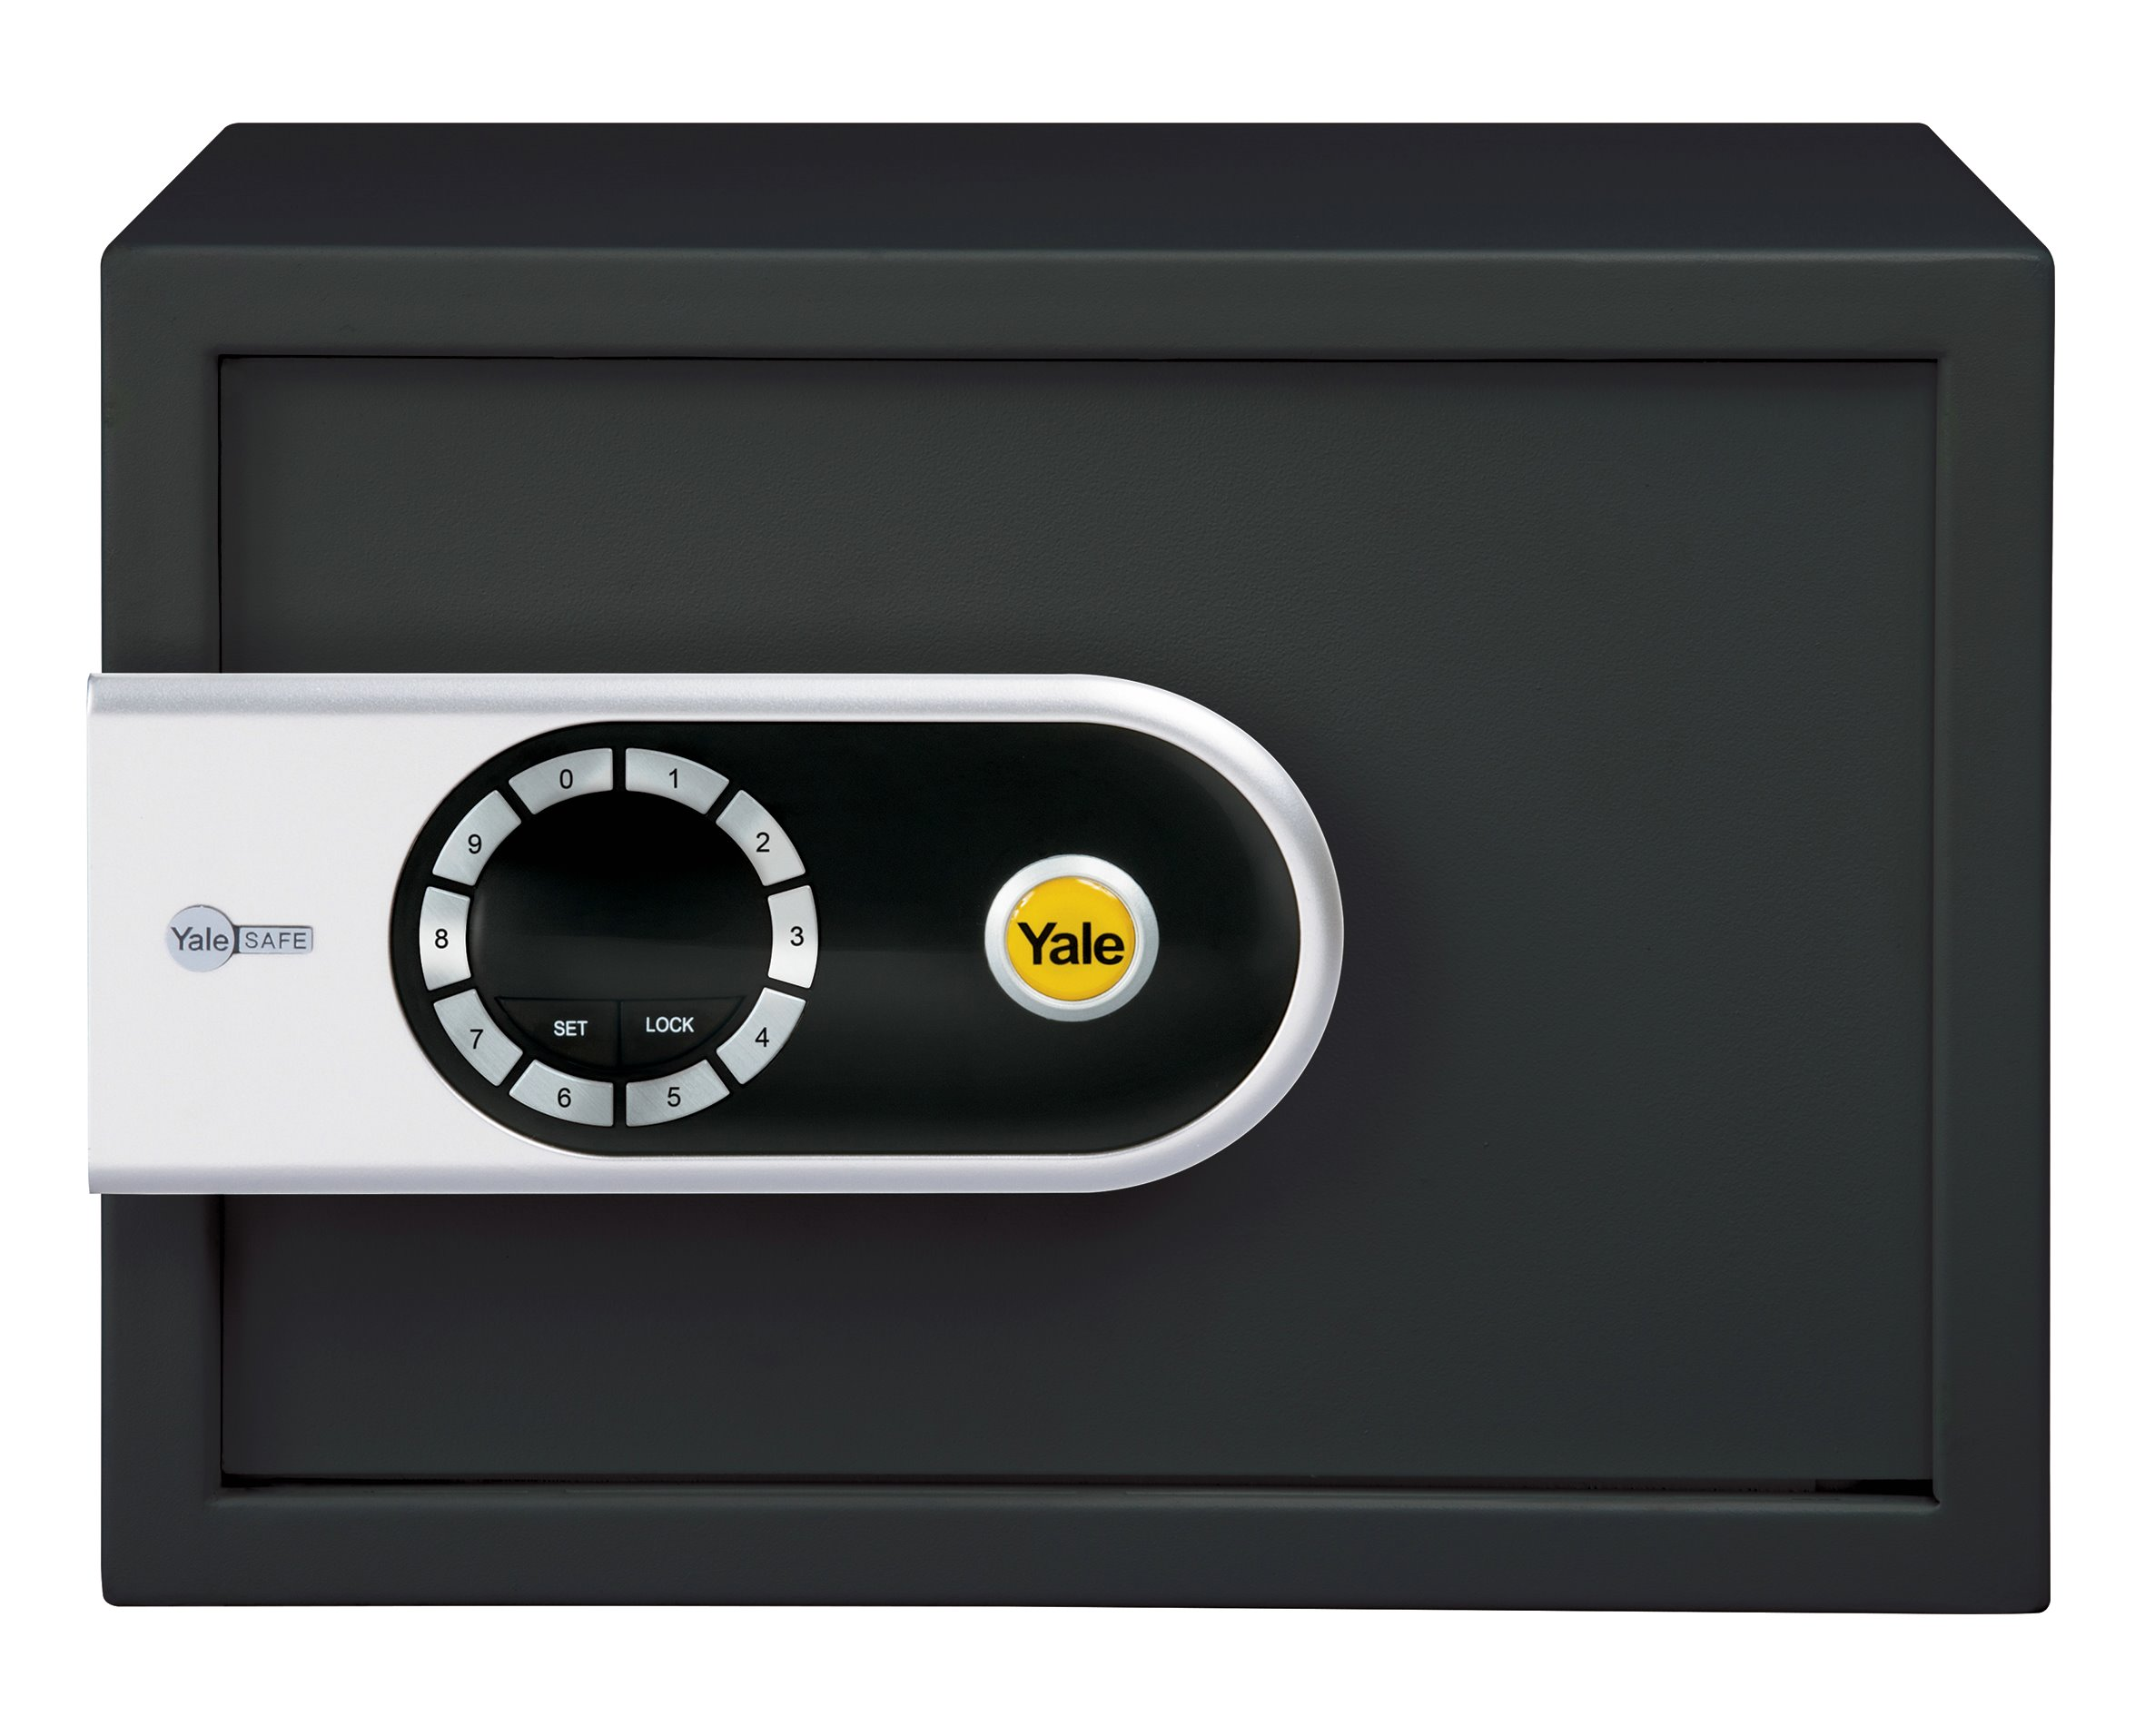 YSEL/250/EG7 - Yale Elite Digital Safes (Medium)